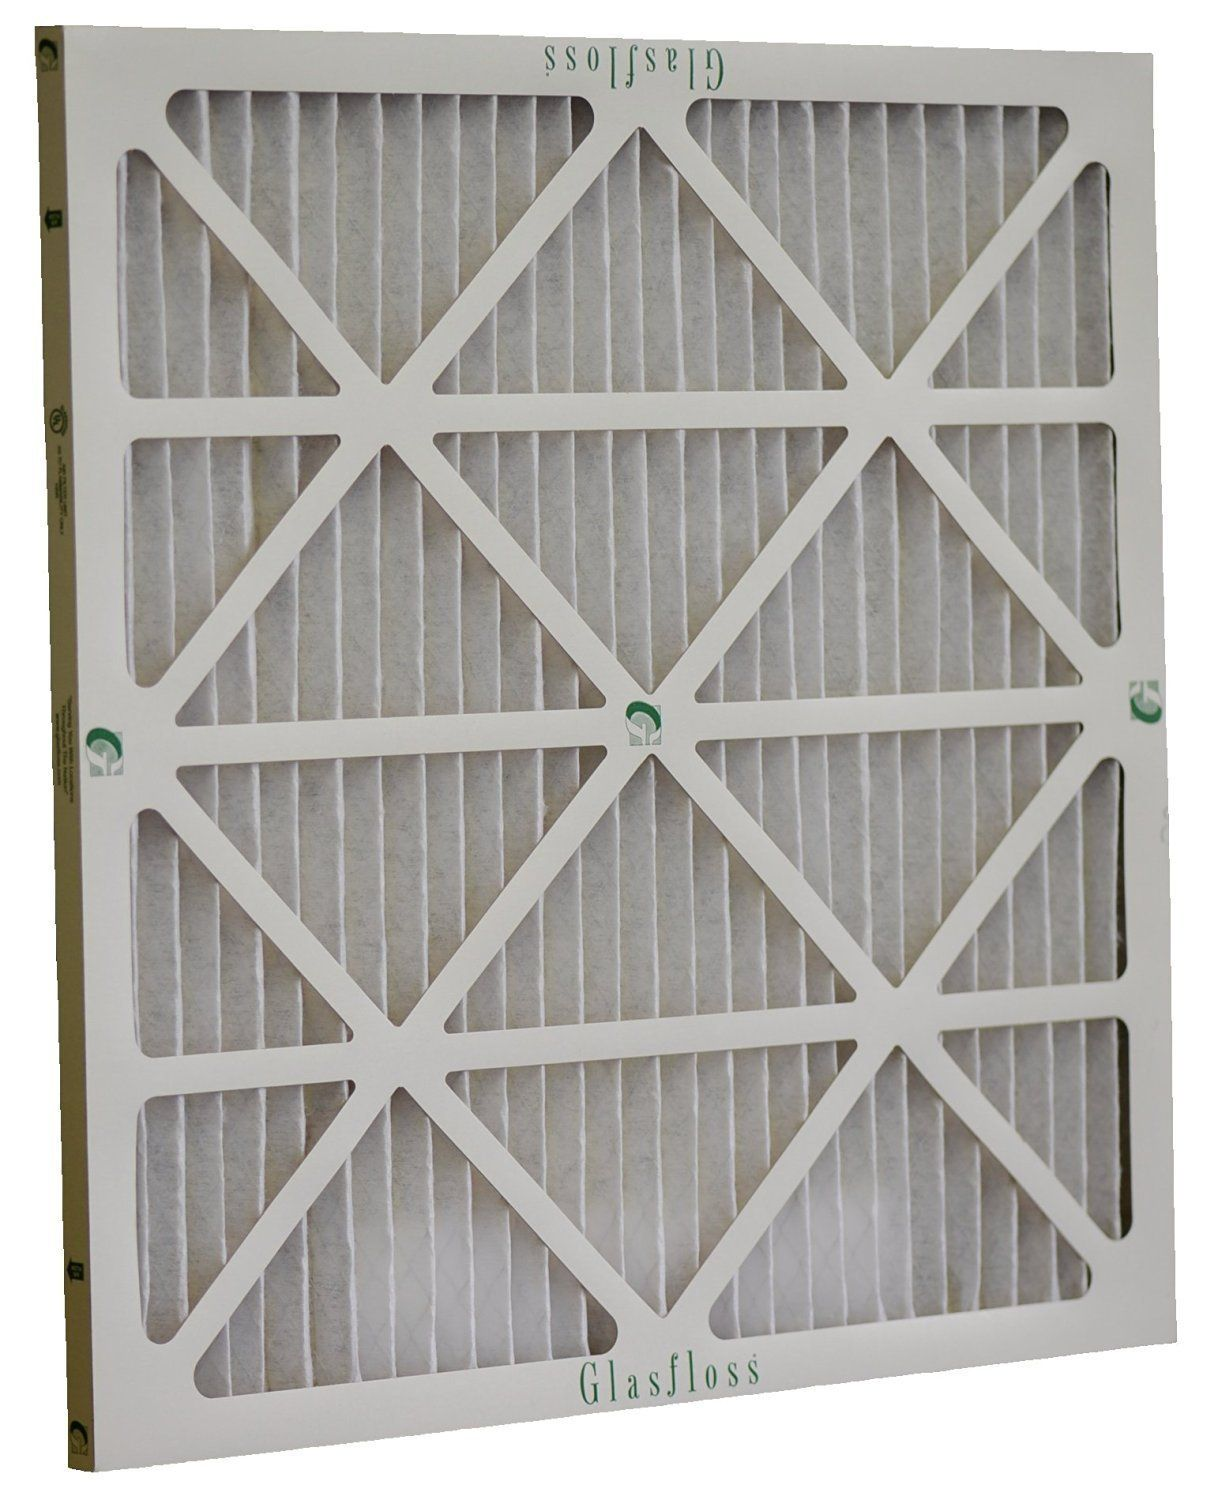 Trion Air Bear 20 x 20 x 5 in 2020 Merv, Hvac filters